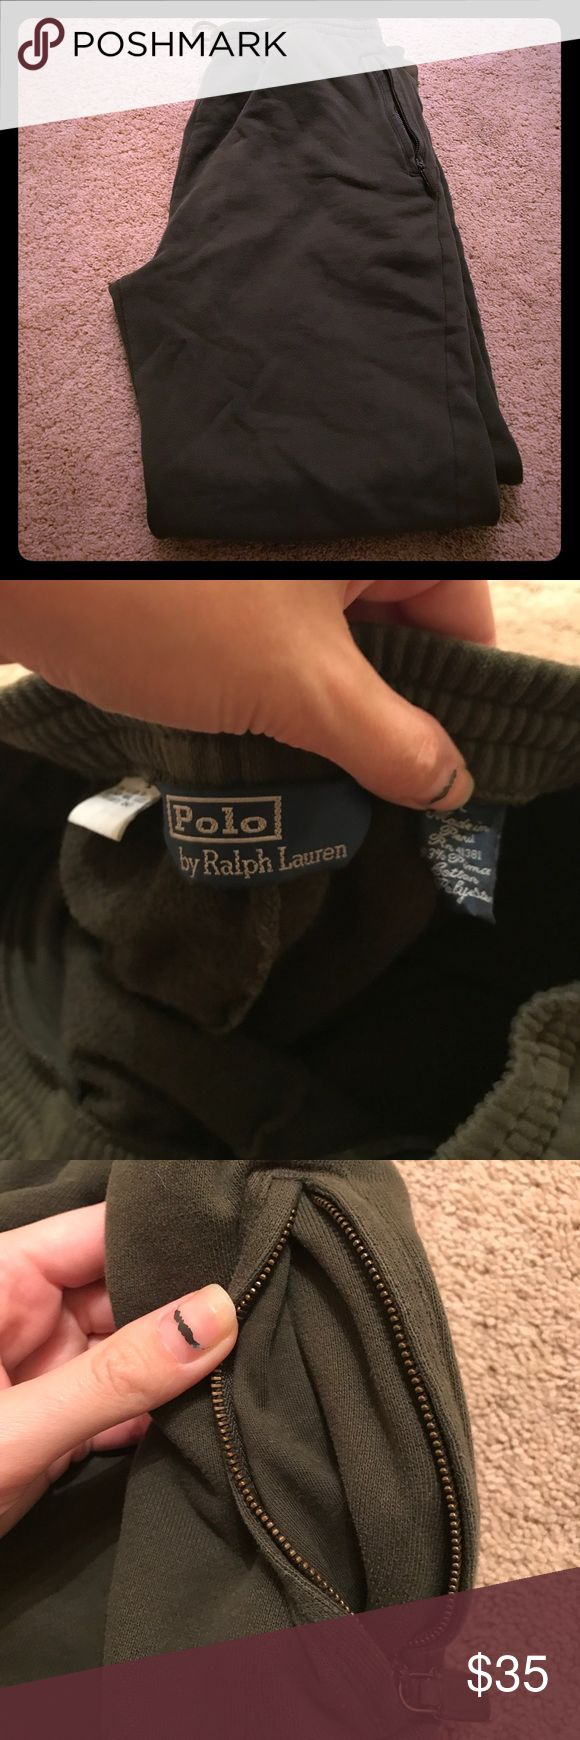 Men's Polo by Ralph Lauren sweatpants🌈 Great condition only worn a handful of times... never really fit my hubby made from cotton and polyester!! Polo by Ralph Lauren Pants Sweatpants & Joggers